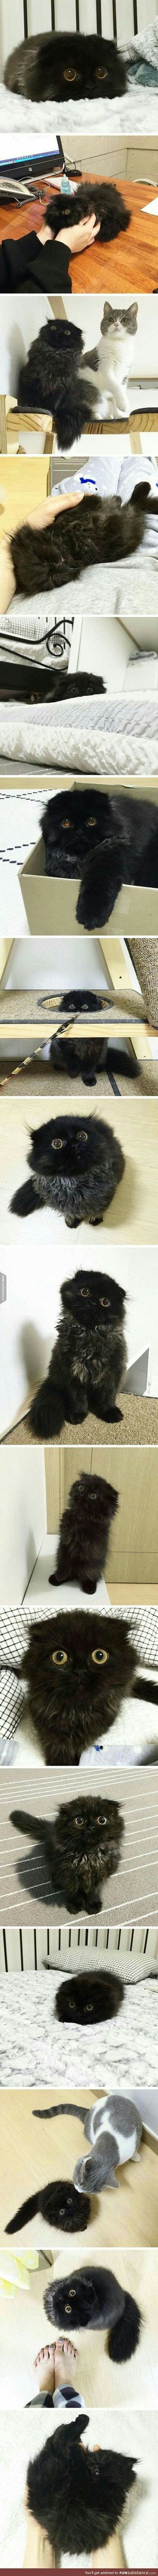 Omg so cute but third picture, kitty on the right, looks exactly like my cat when he was a kitten..